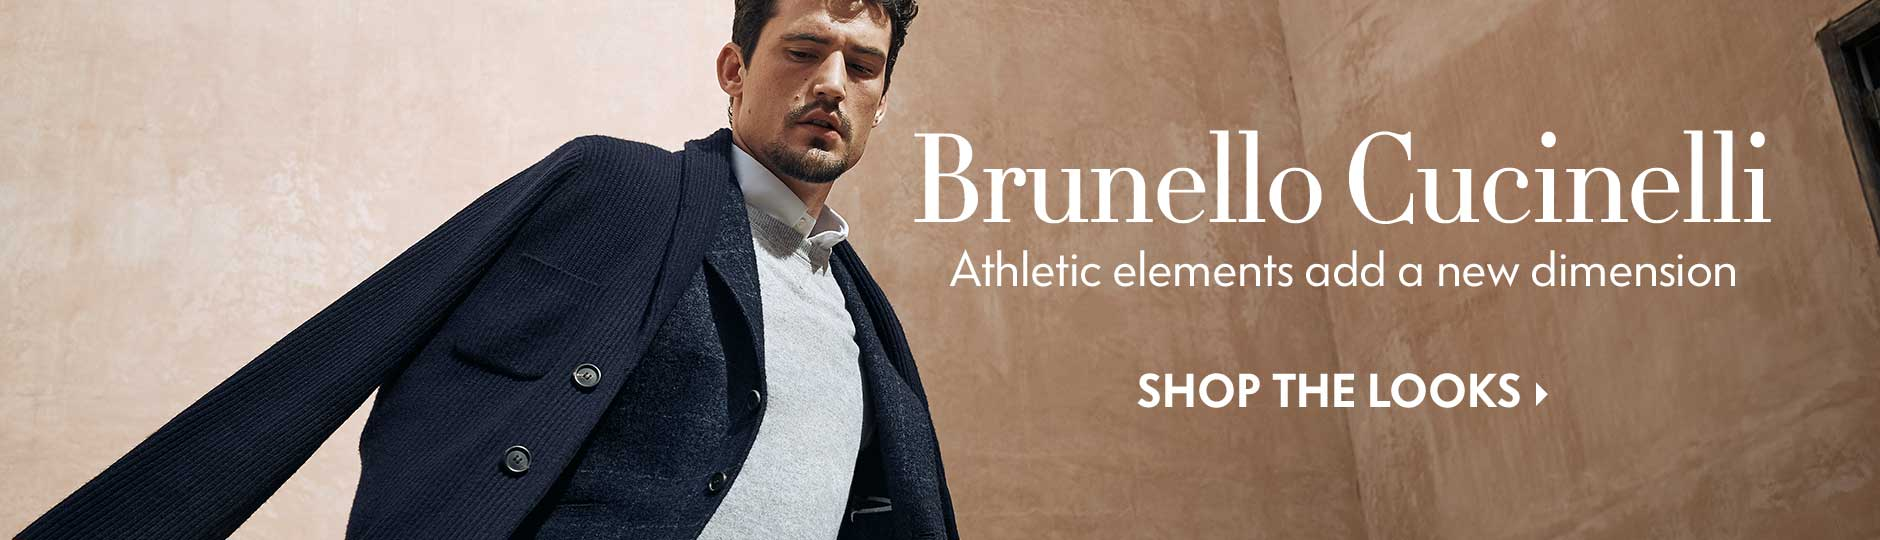 Brunello Cucinelli - Athletic elements add a new dimension